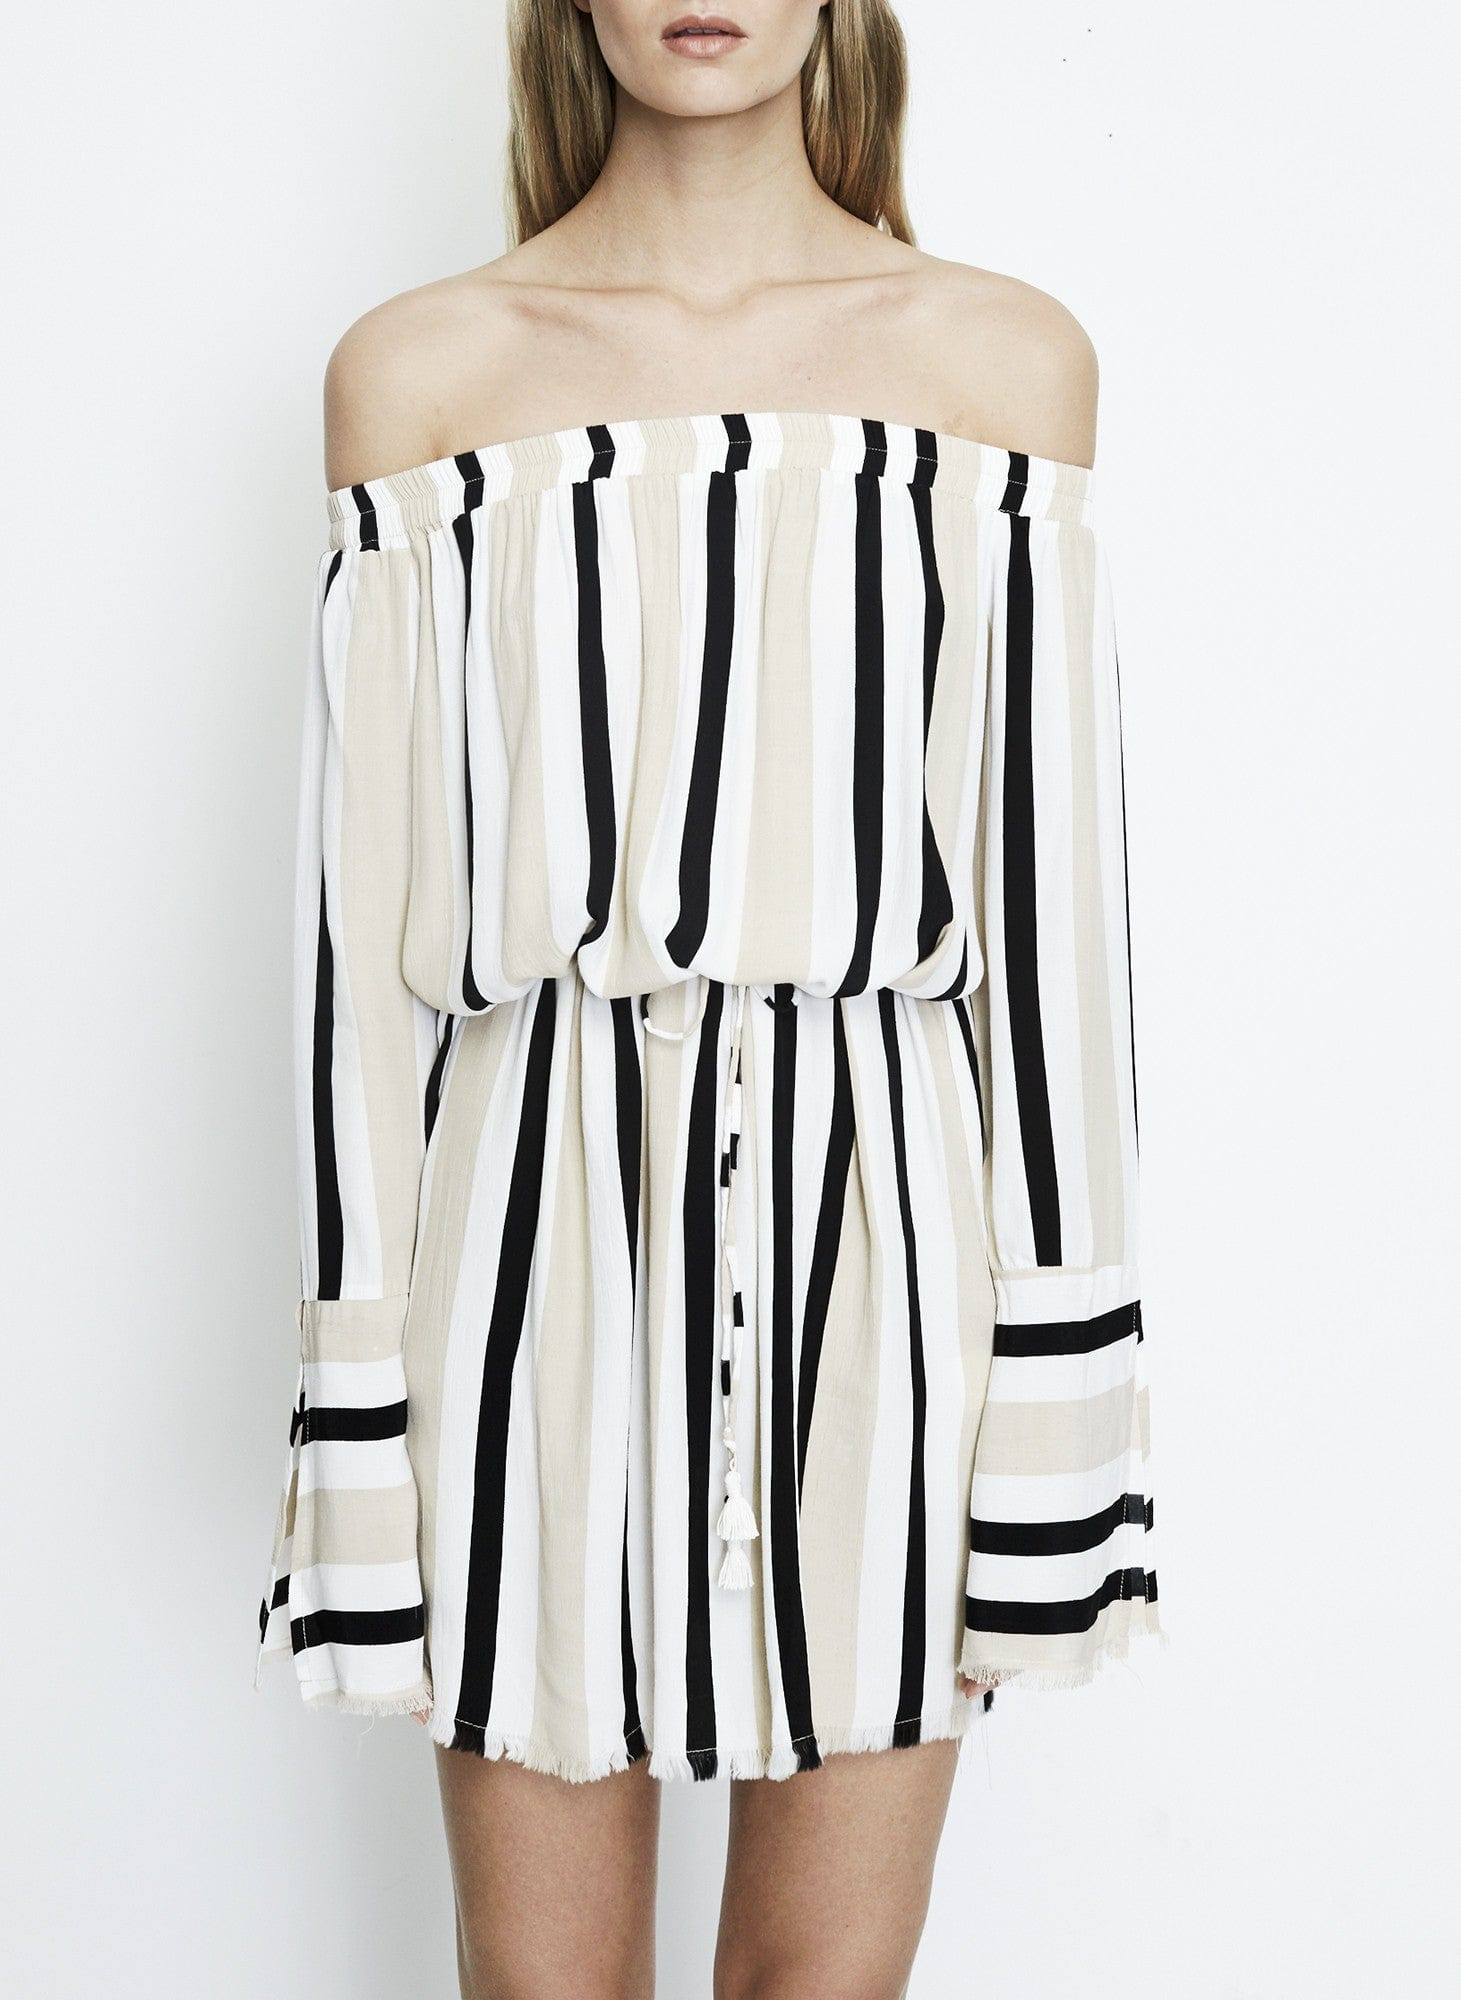 RETRO STRIPES - NAUMI DRESS - FINAL SALE